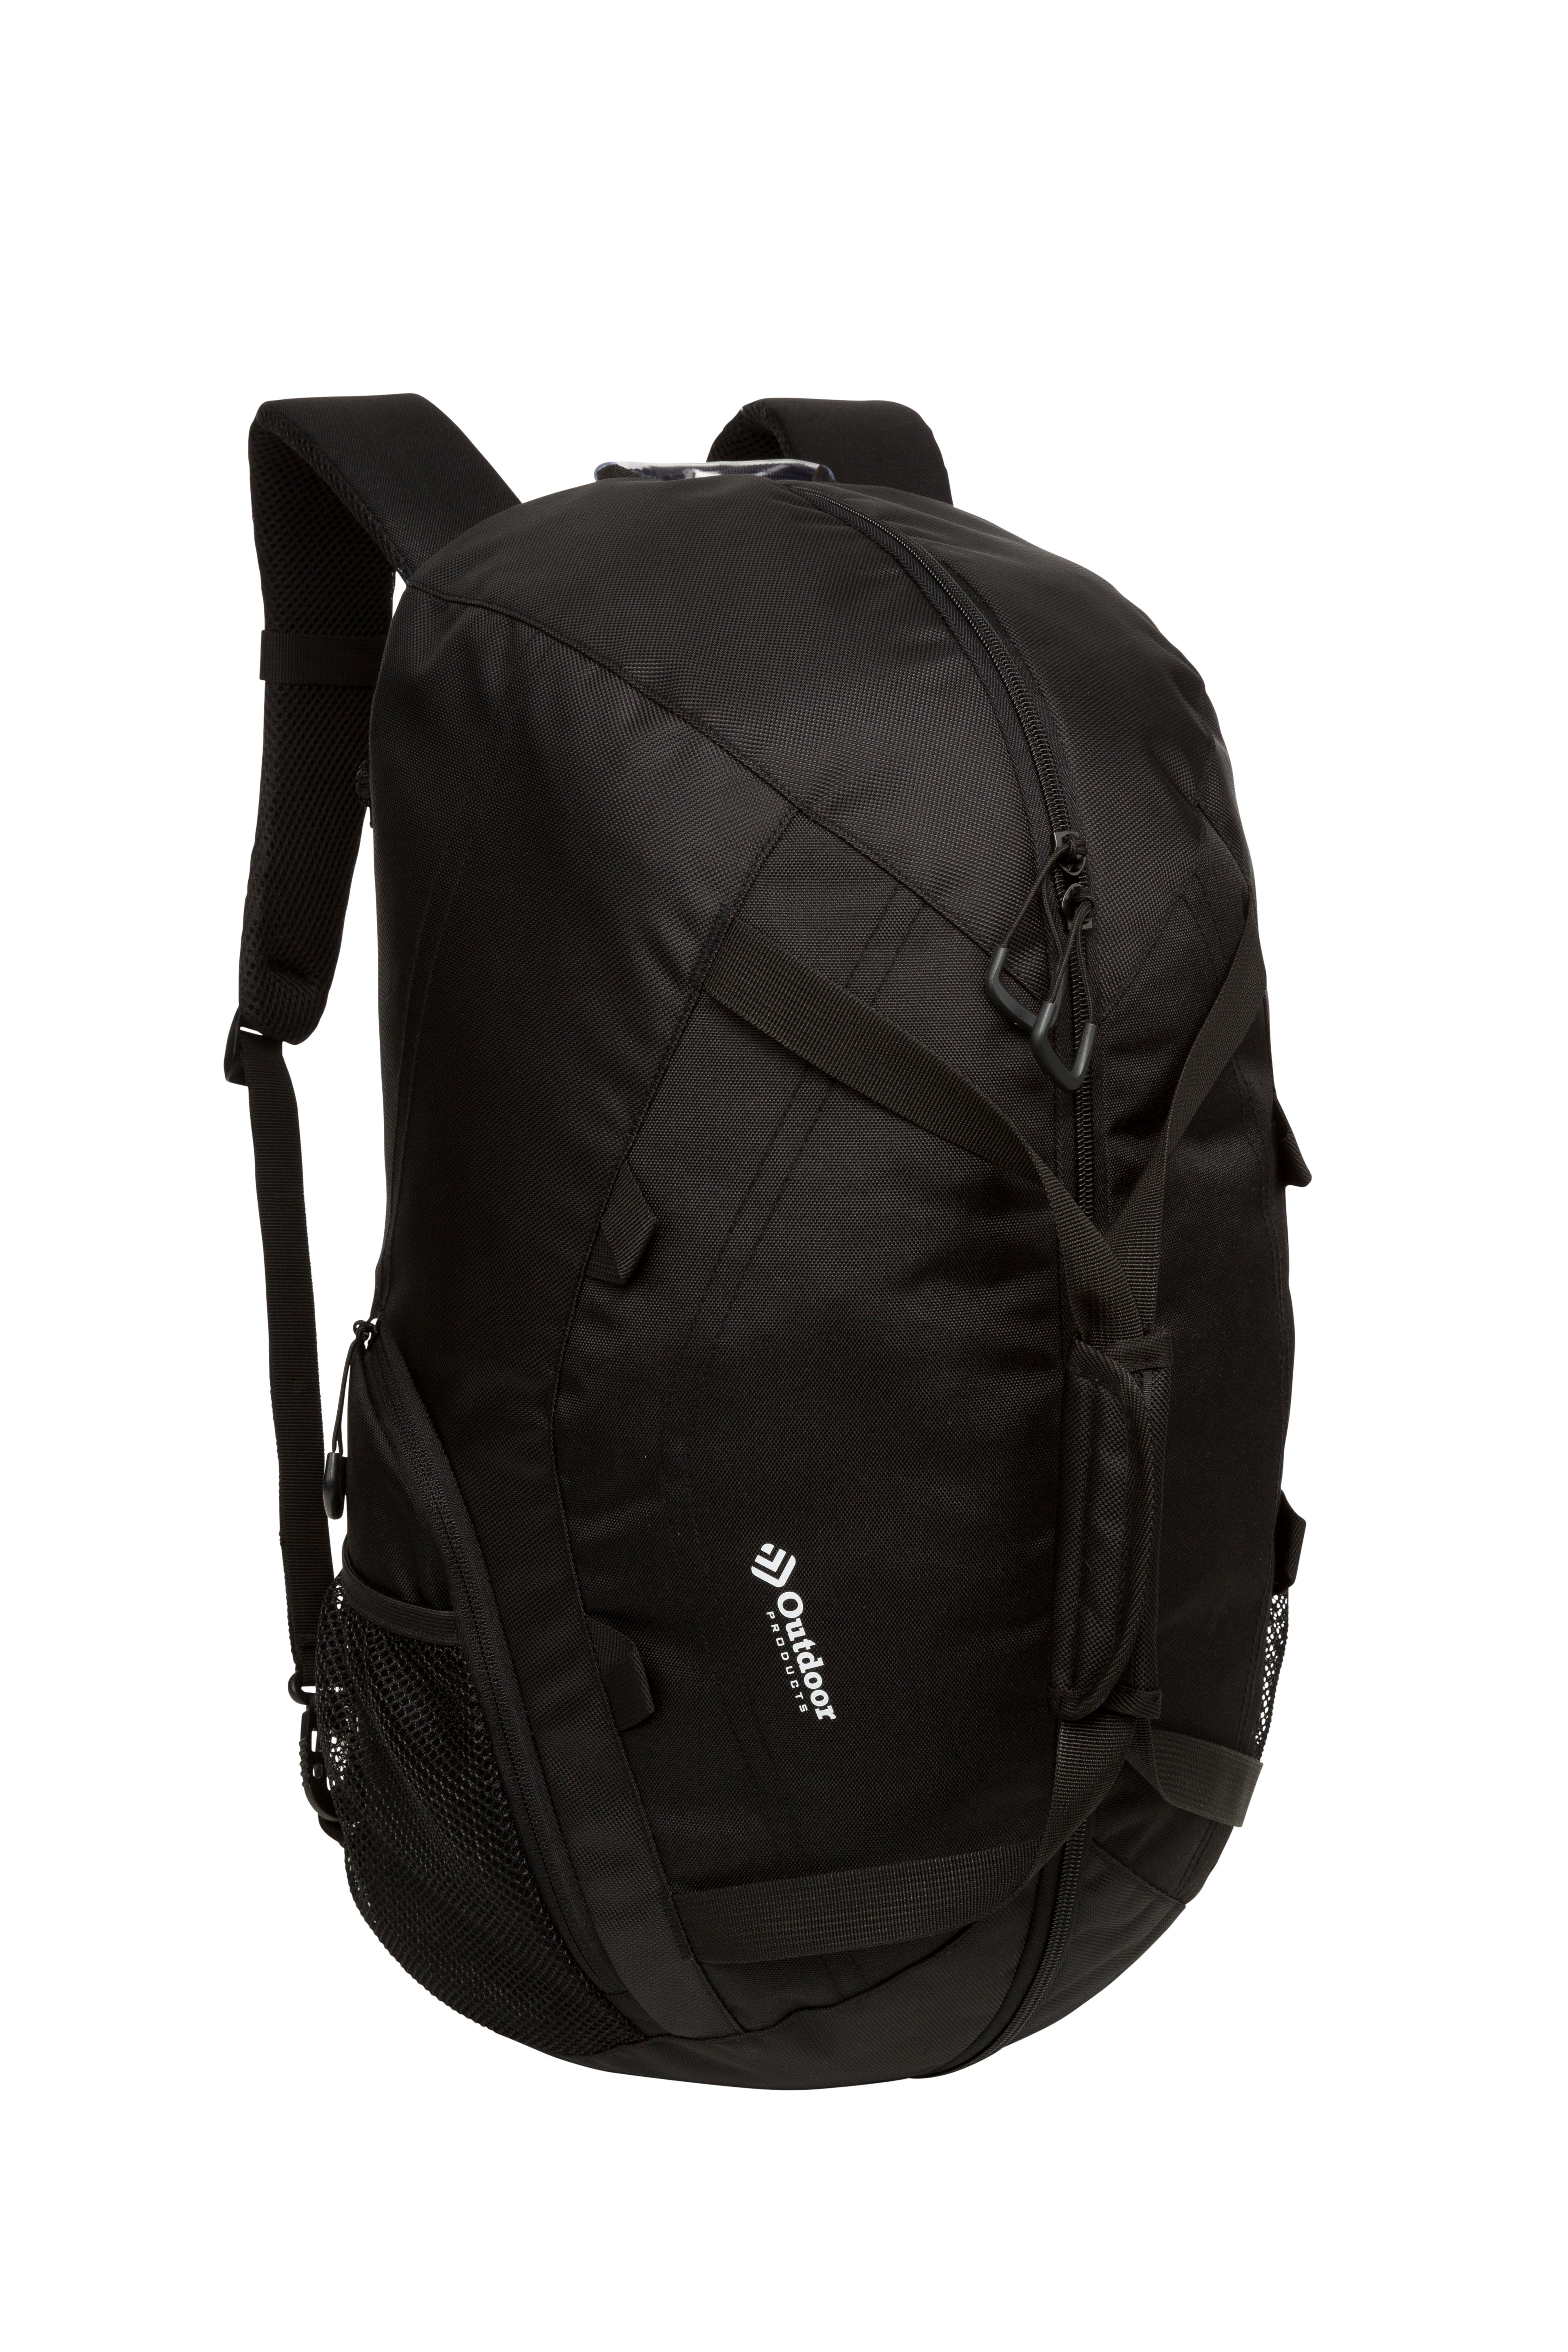 Outdoor Products City-Hiker Backpack Duffel Bag, Black